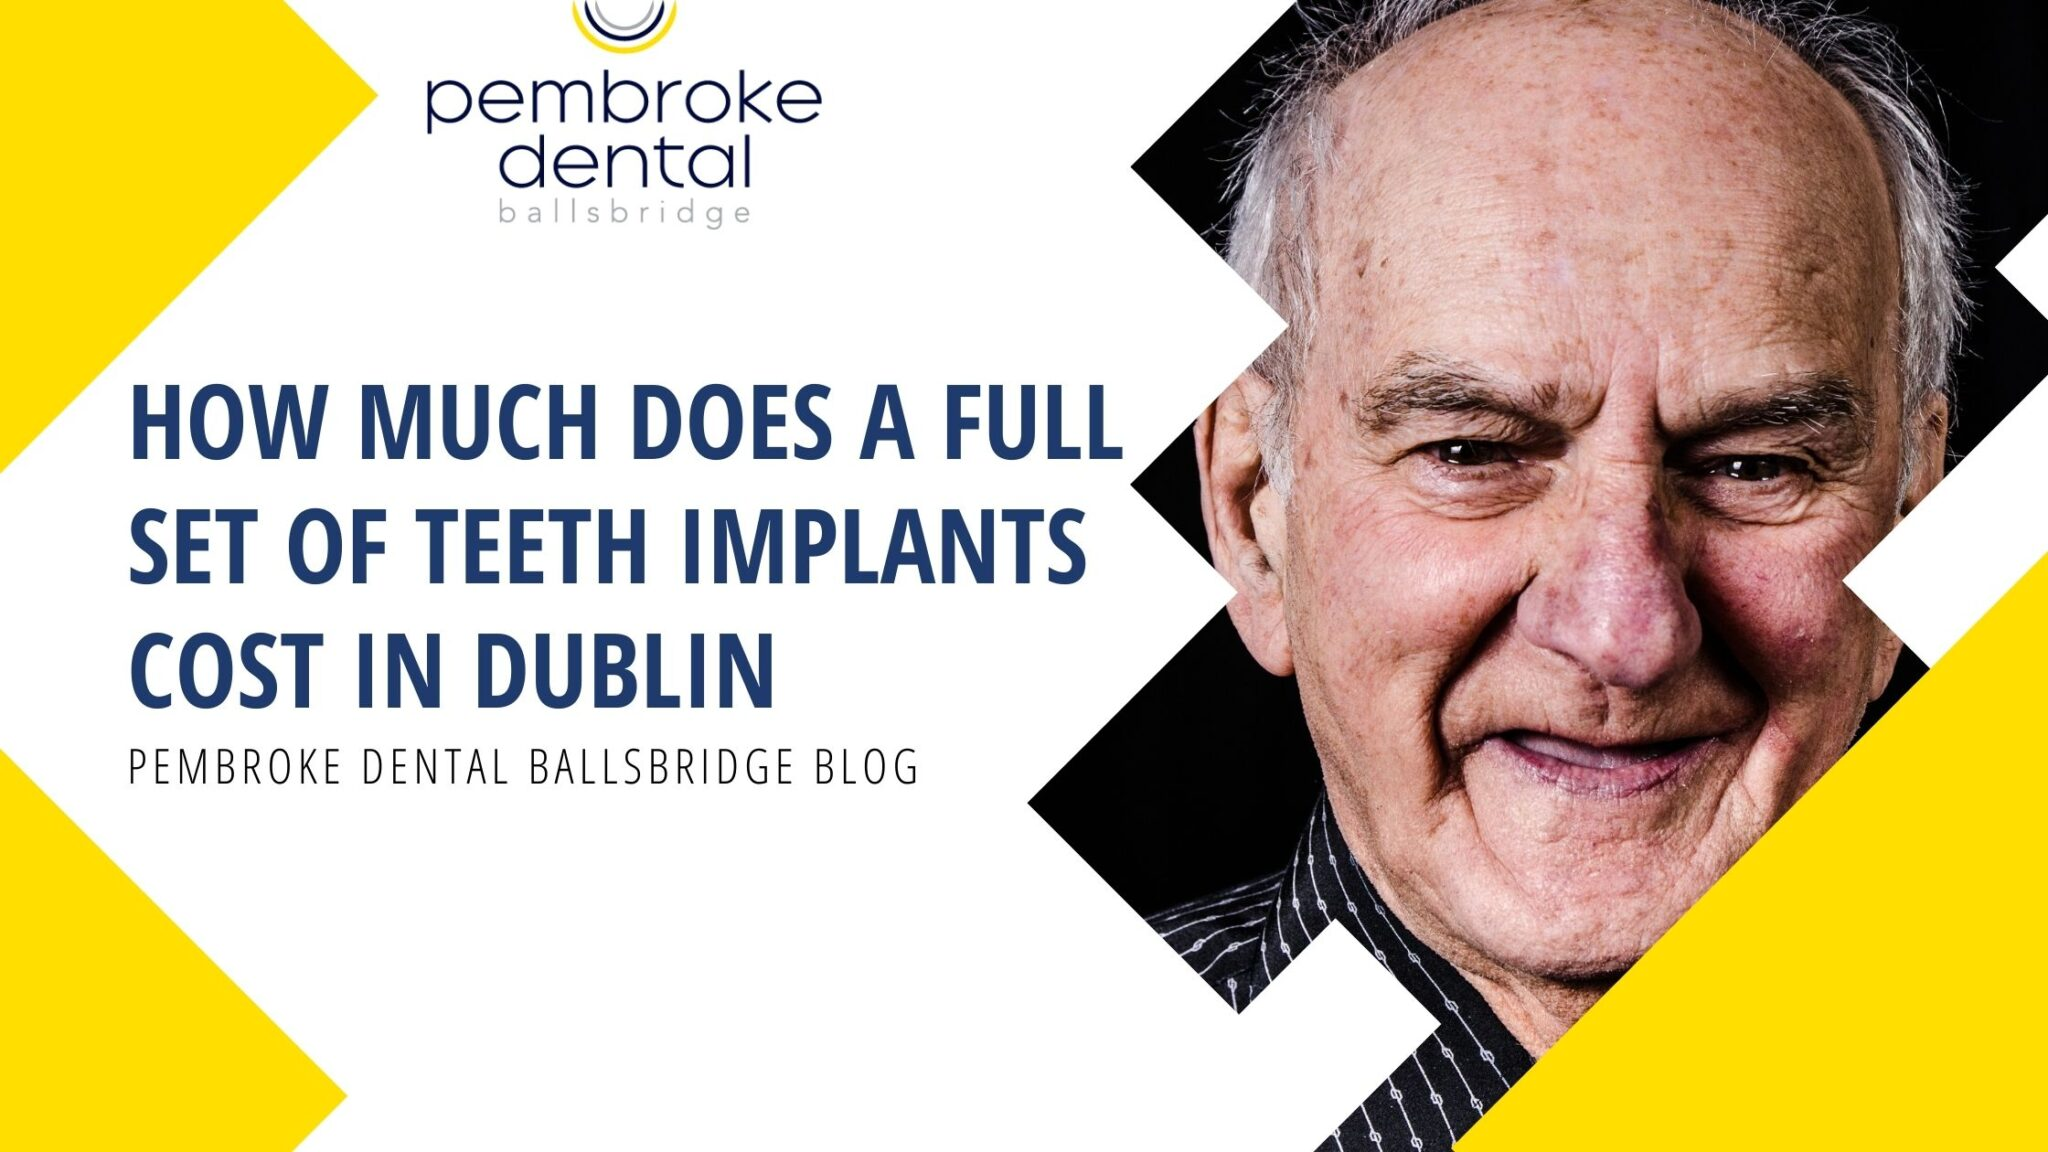 How much does a full set of dental implants cost